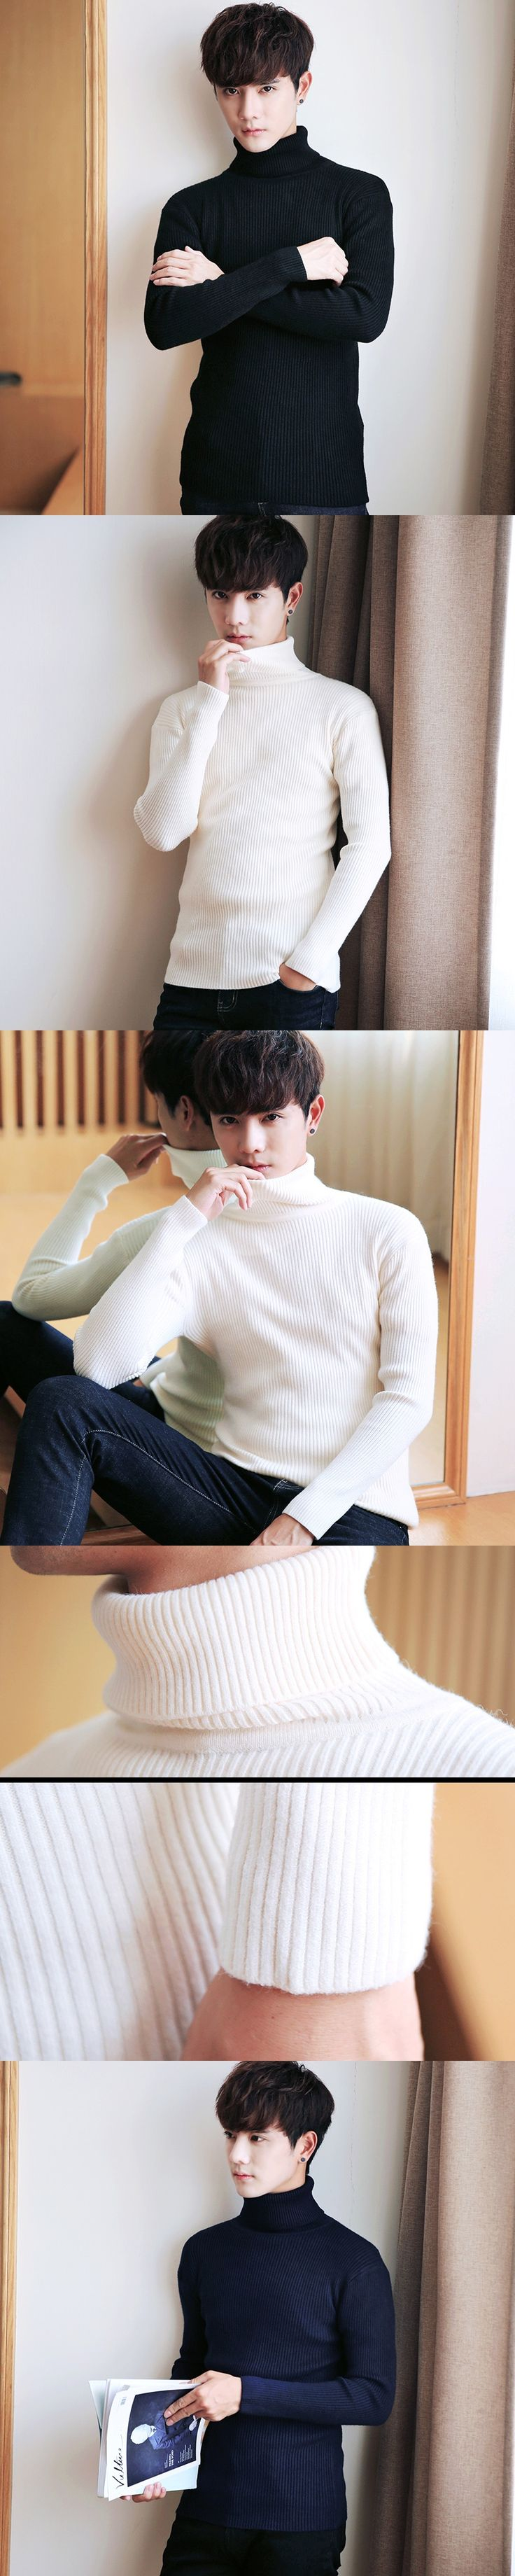 XMY3DWX 2017 New Autumn Winter Brand Sweater Men's Turtleneck Slim Pullover Solid Color Knitted Sweater Men slim Fit Knit shirt